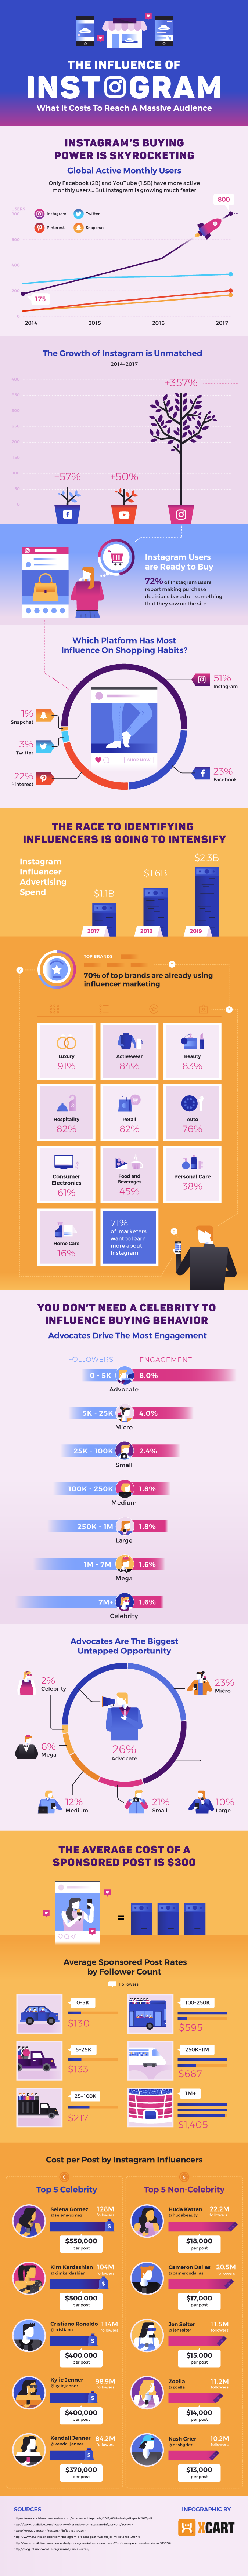 Instagram: Empowering Marketing for E-Commerce - Infographic